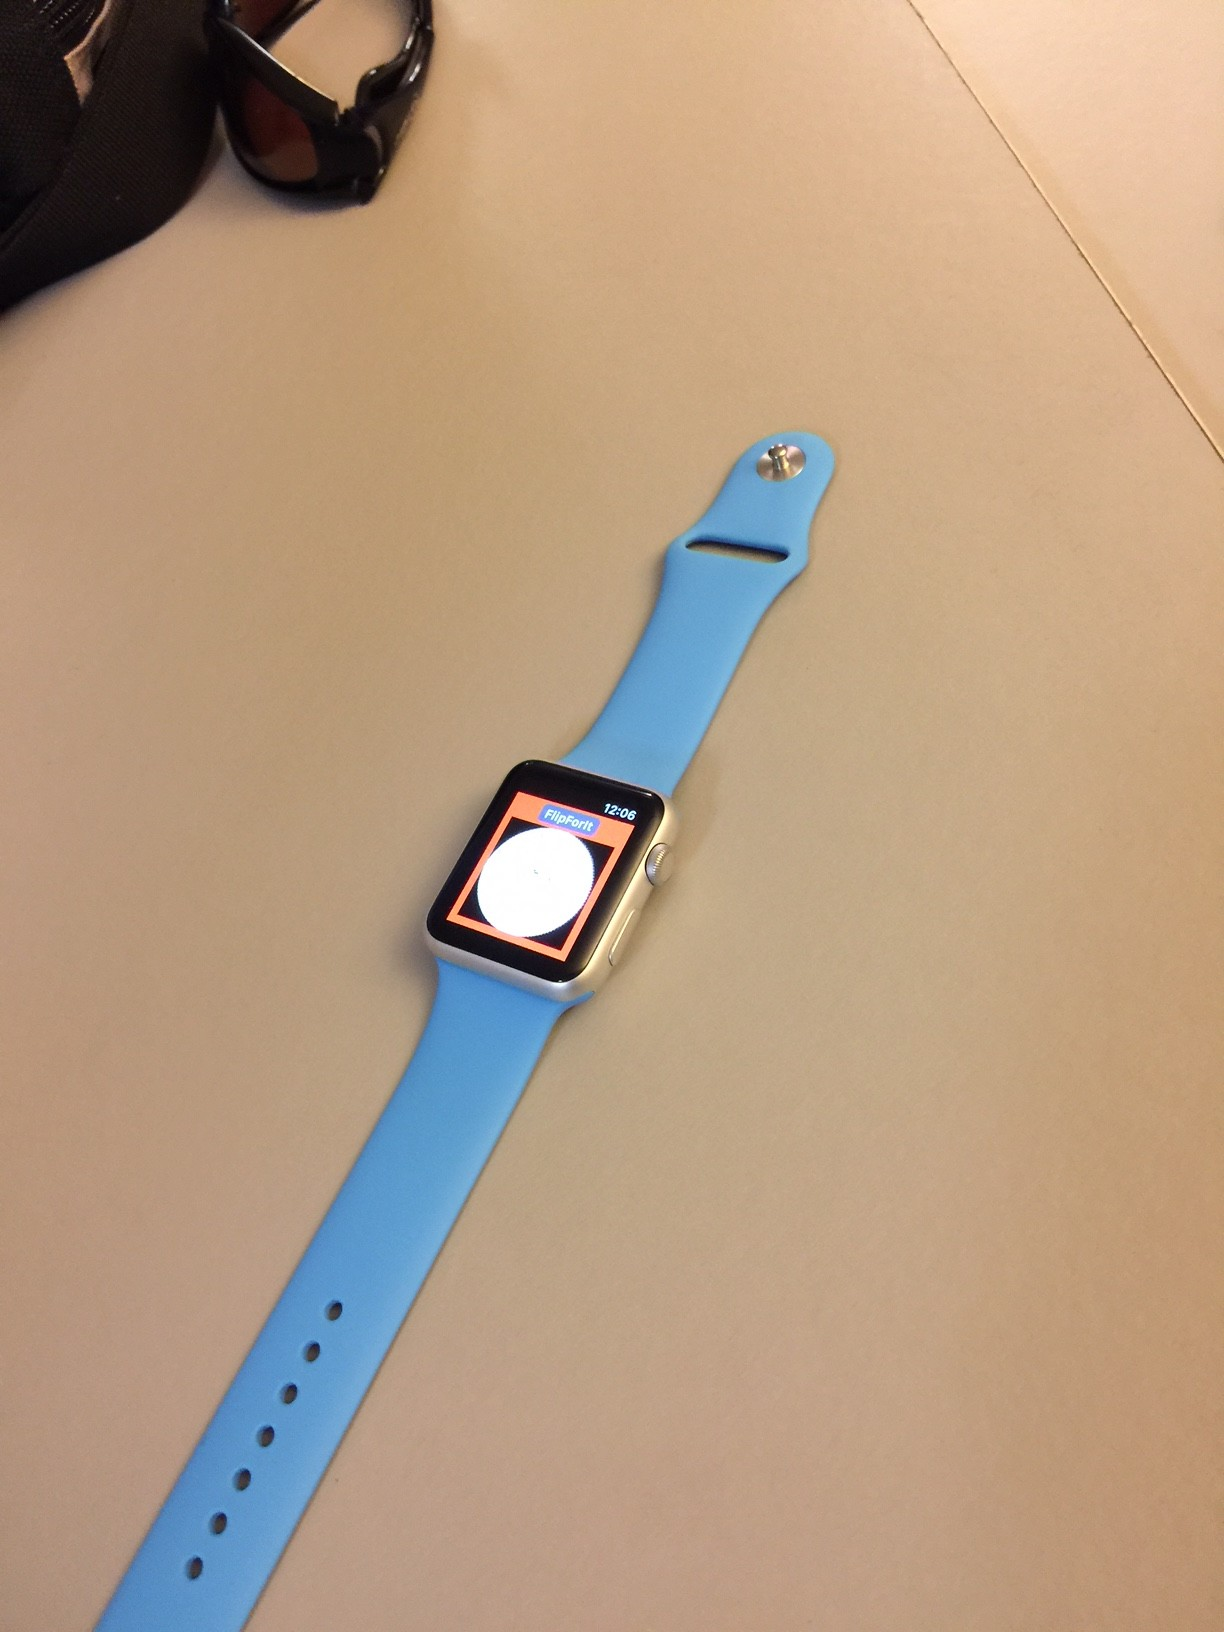 how to become an apple watch developer